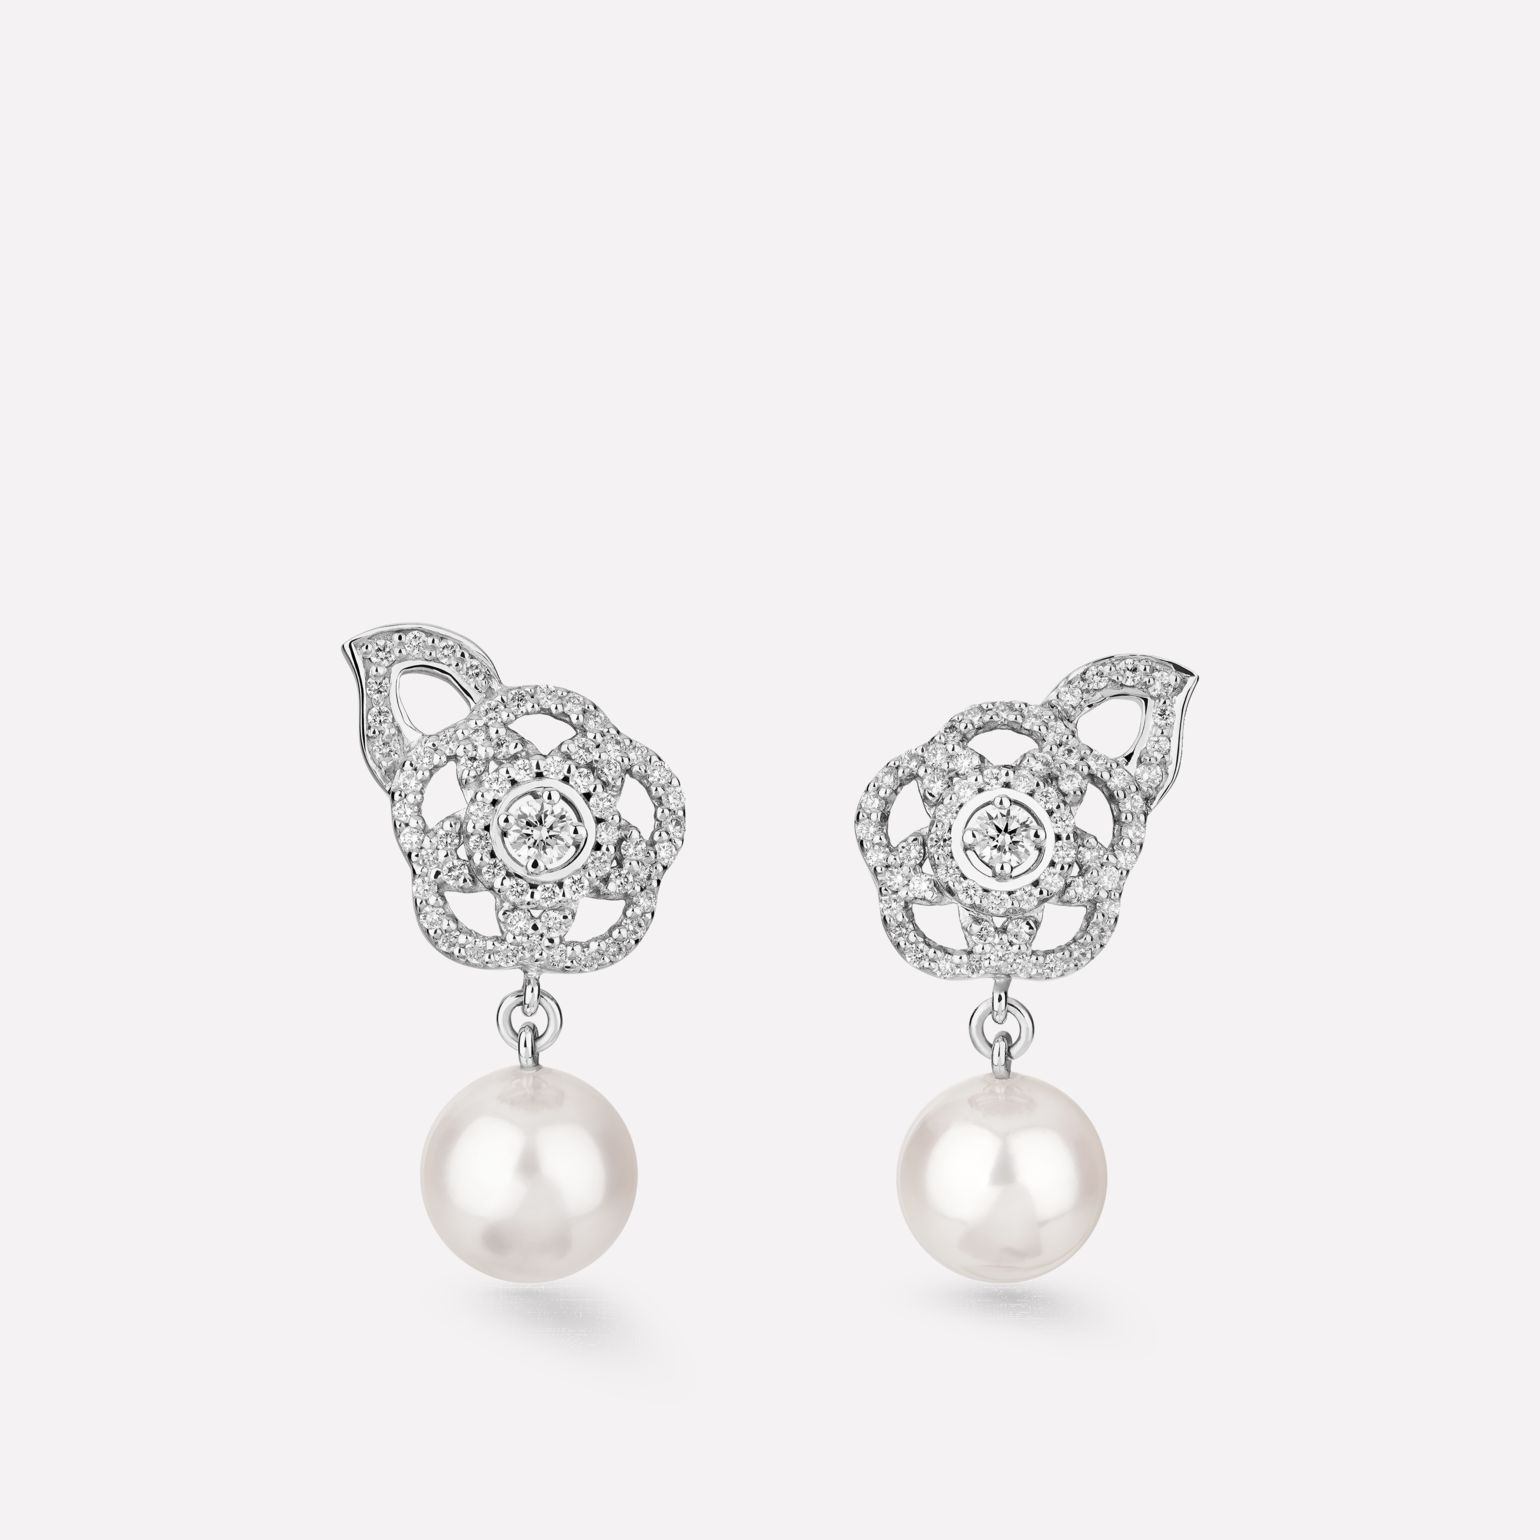 Camélia Brodé earrings 18K white gold, diamonds, cultured pearls